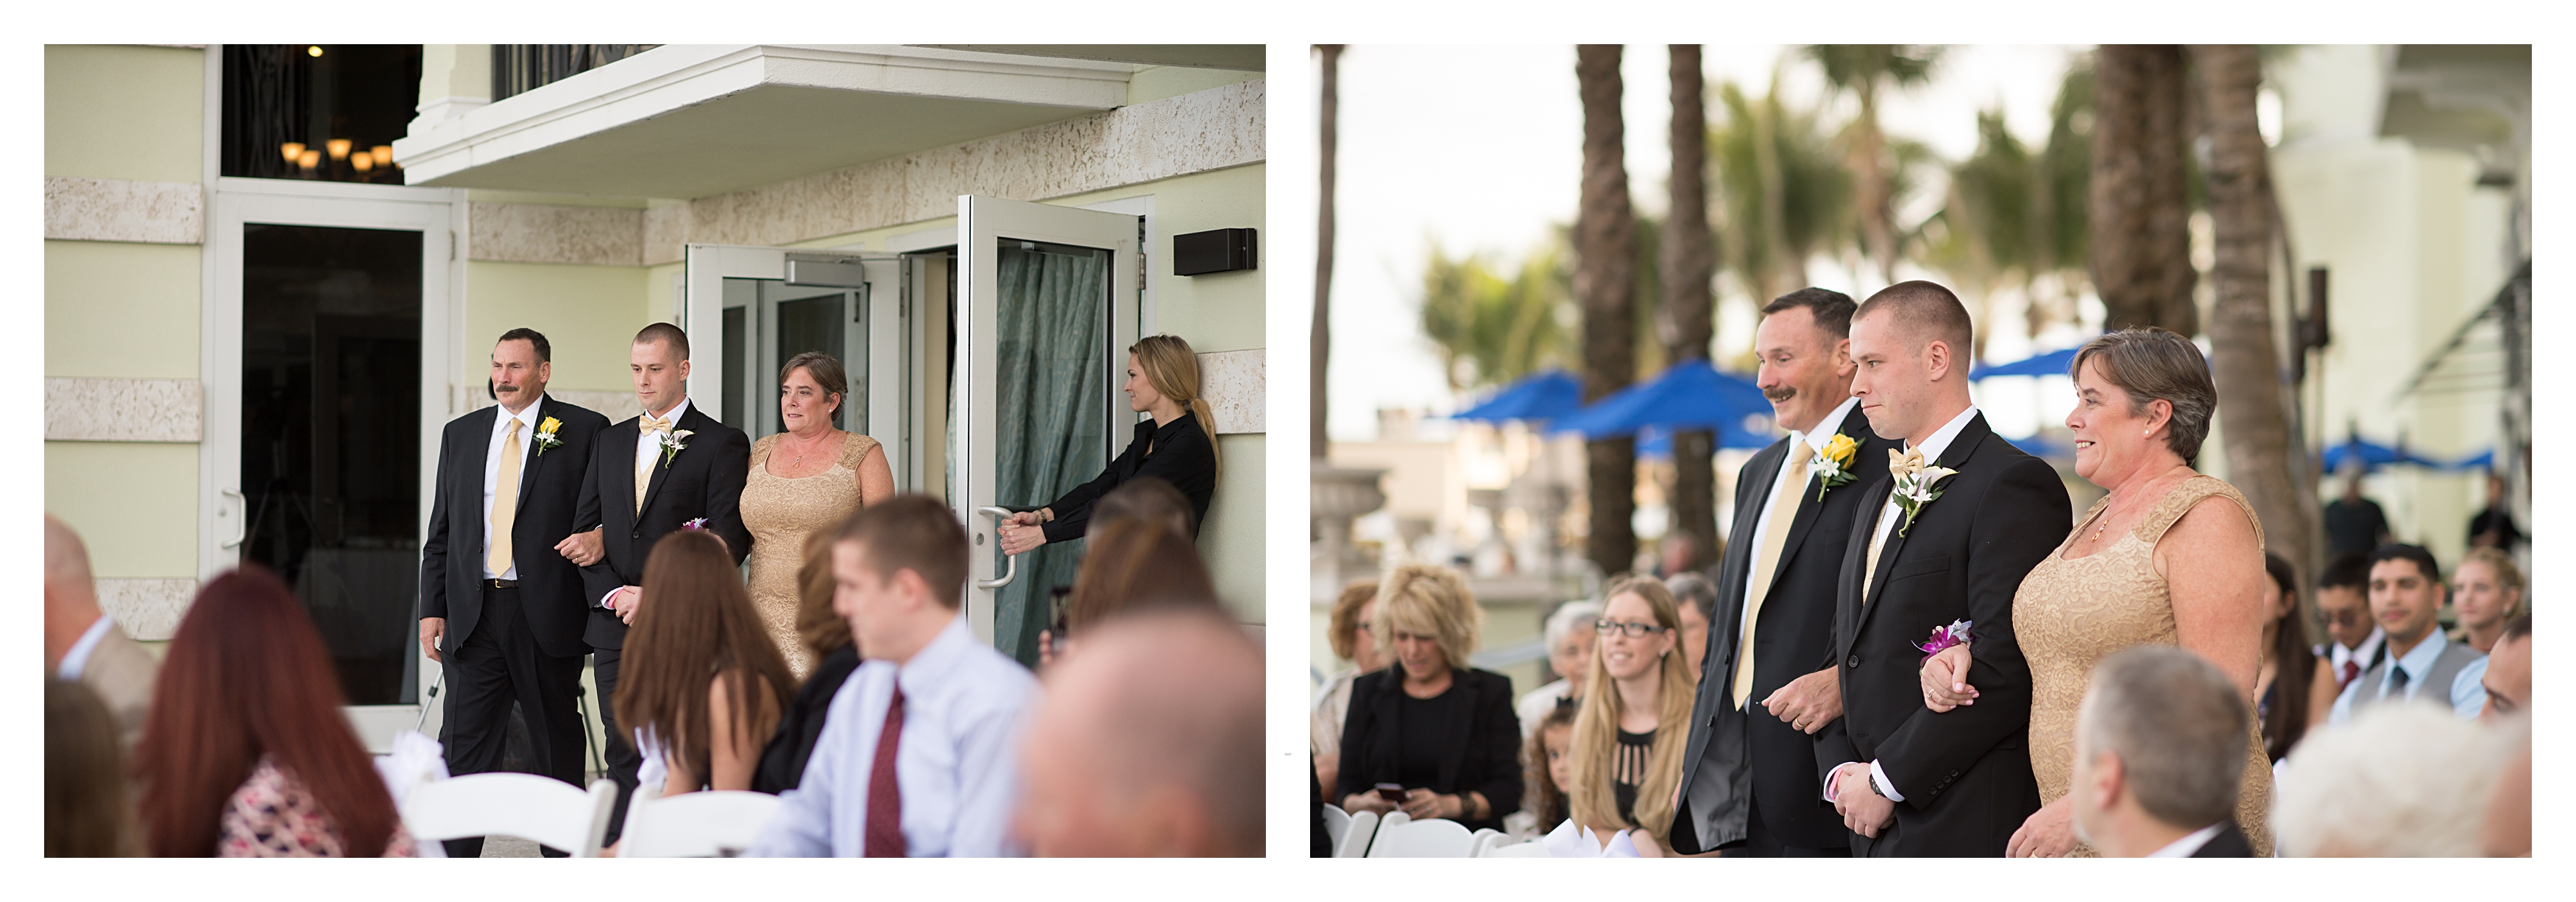 Vero Beach Wedding_0010